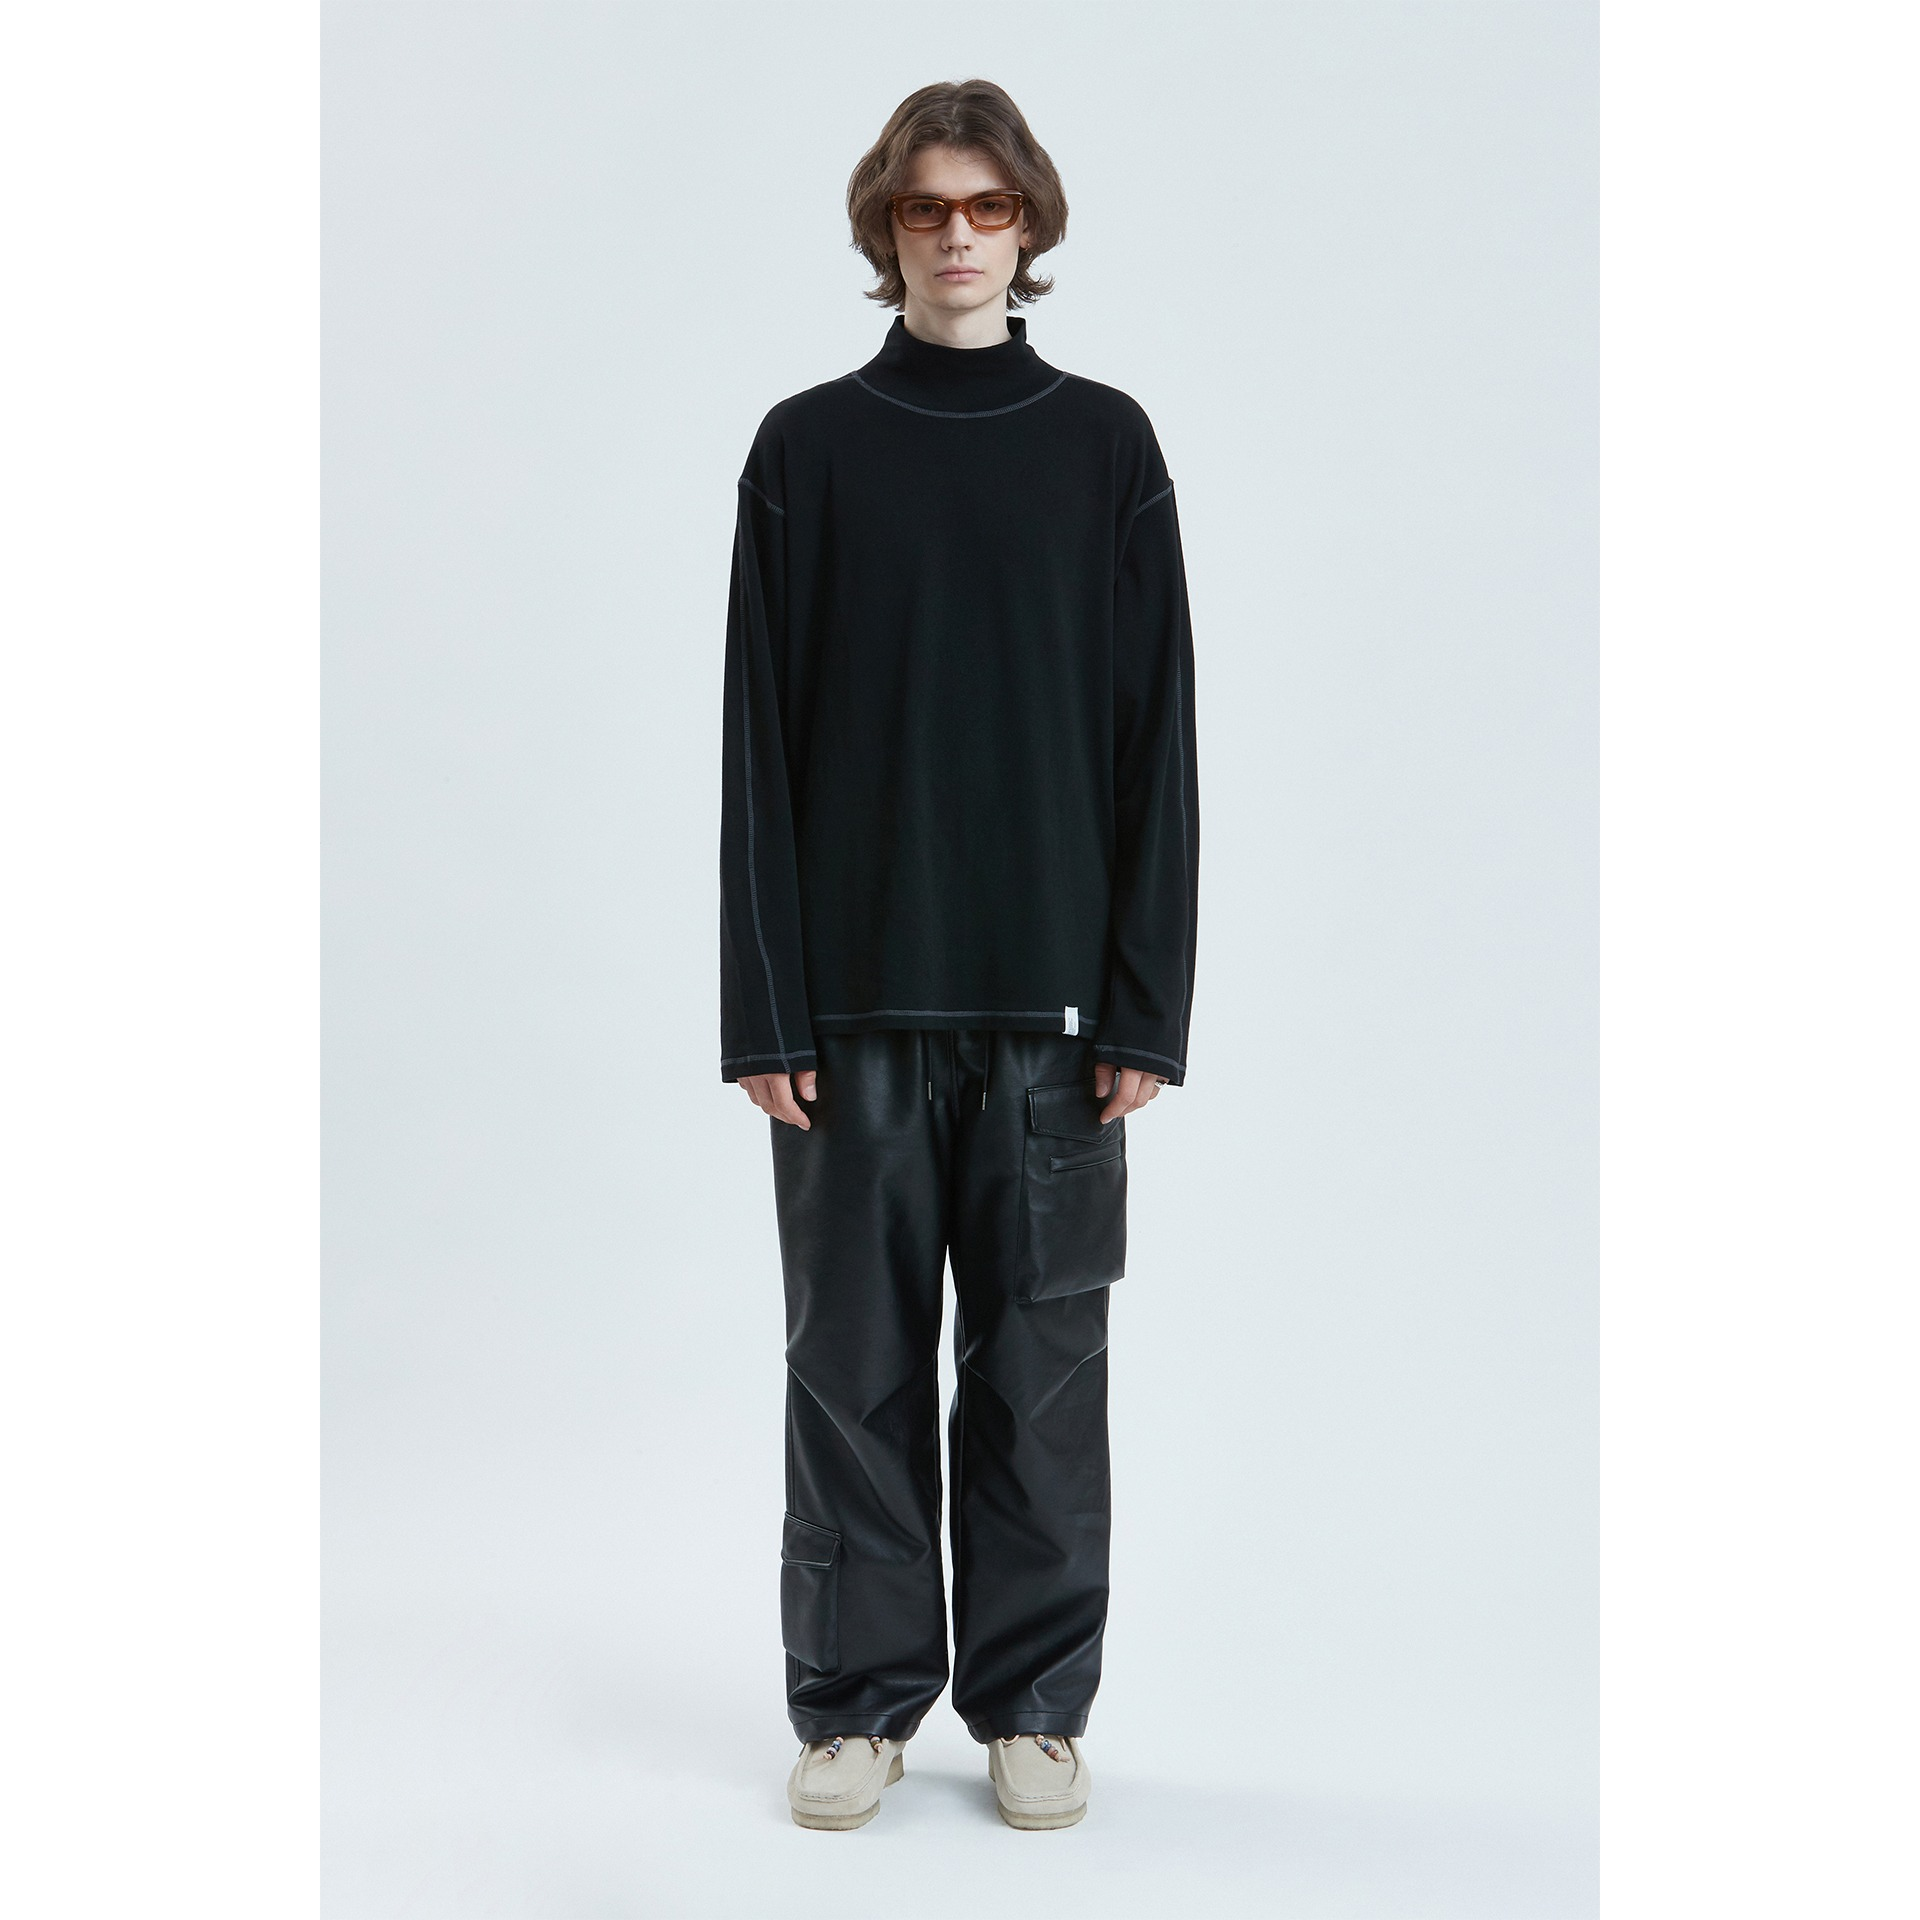 LIFUL CONTRAST TURTLENECK LONG SLEEVE TEE black